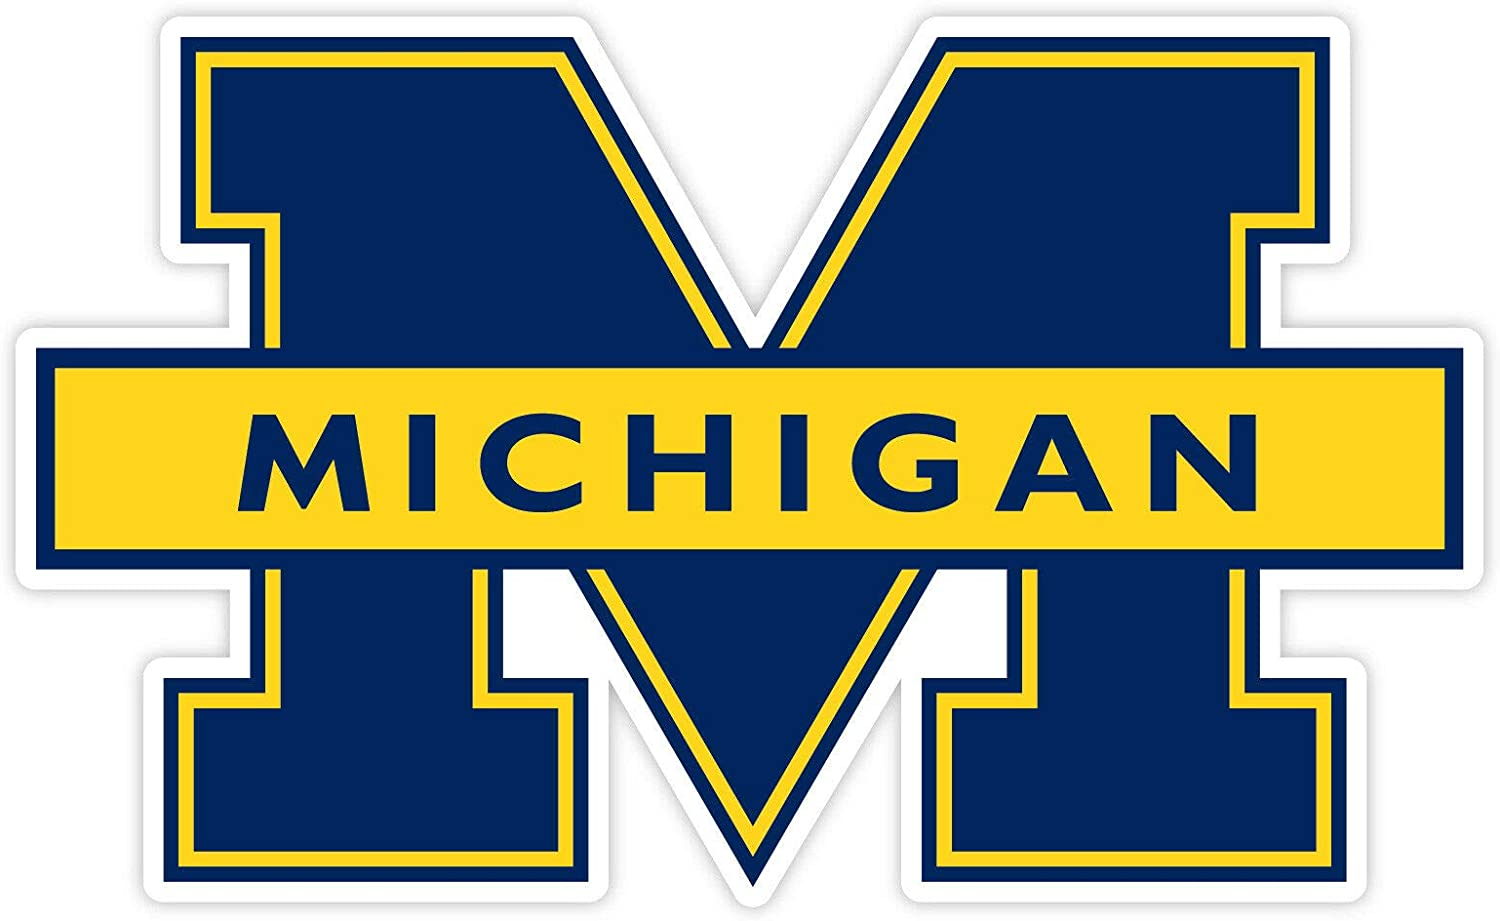 Michigan Stickers University online shop of Mich Any- Max 71% OFF Decal Vinyl Wall Art